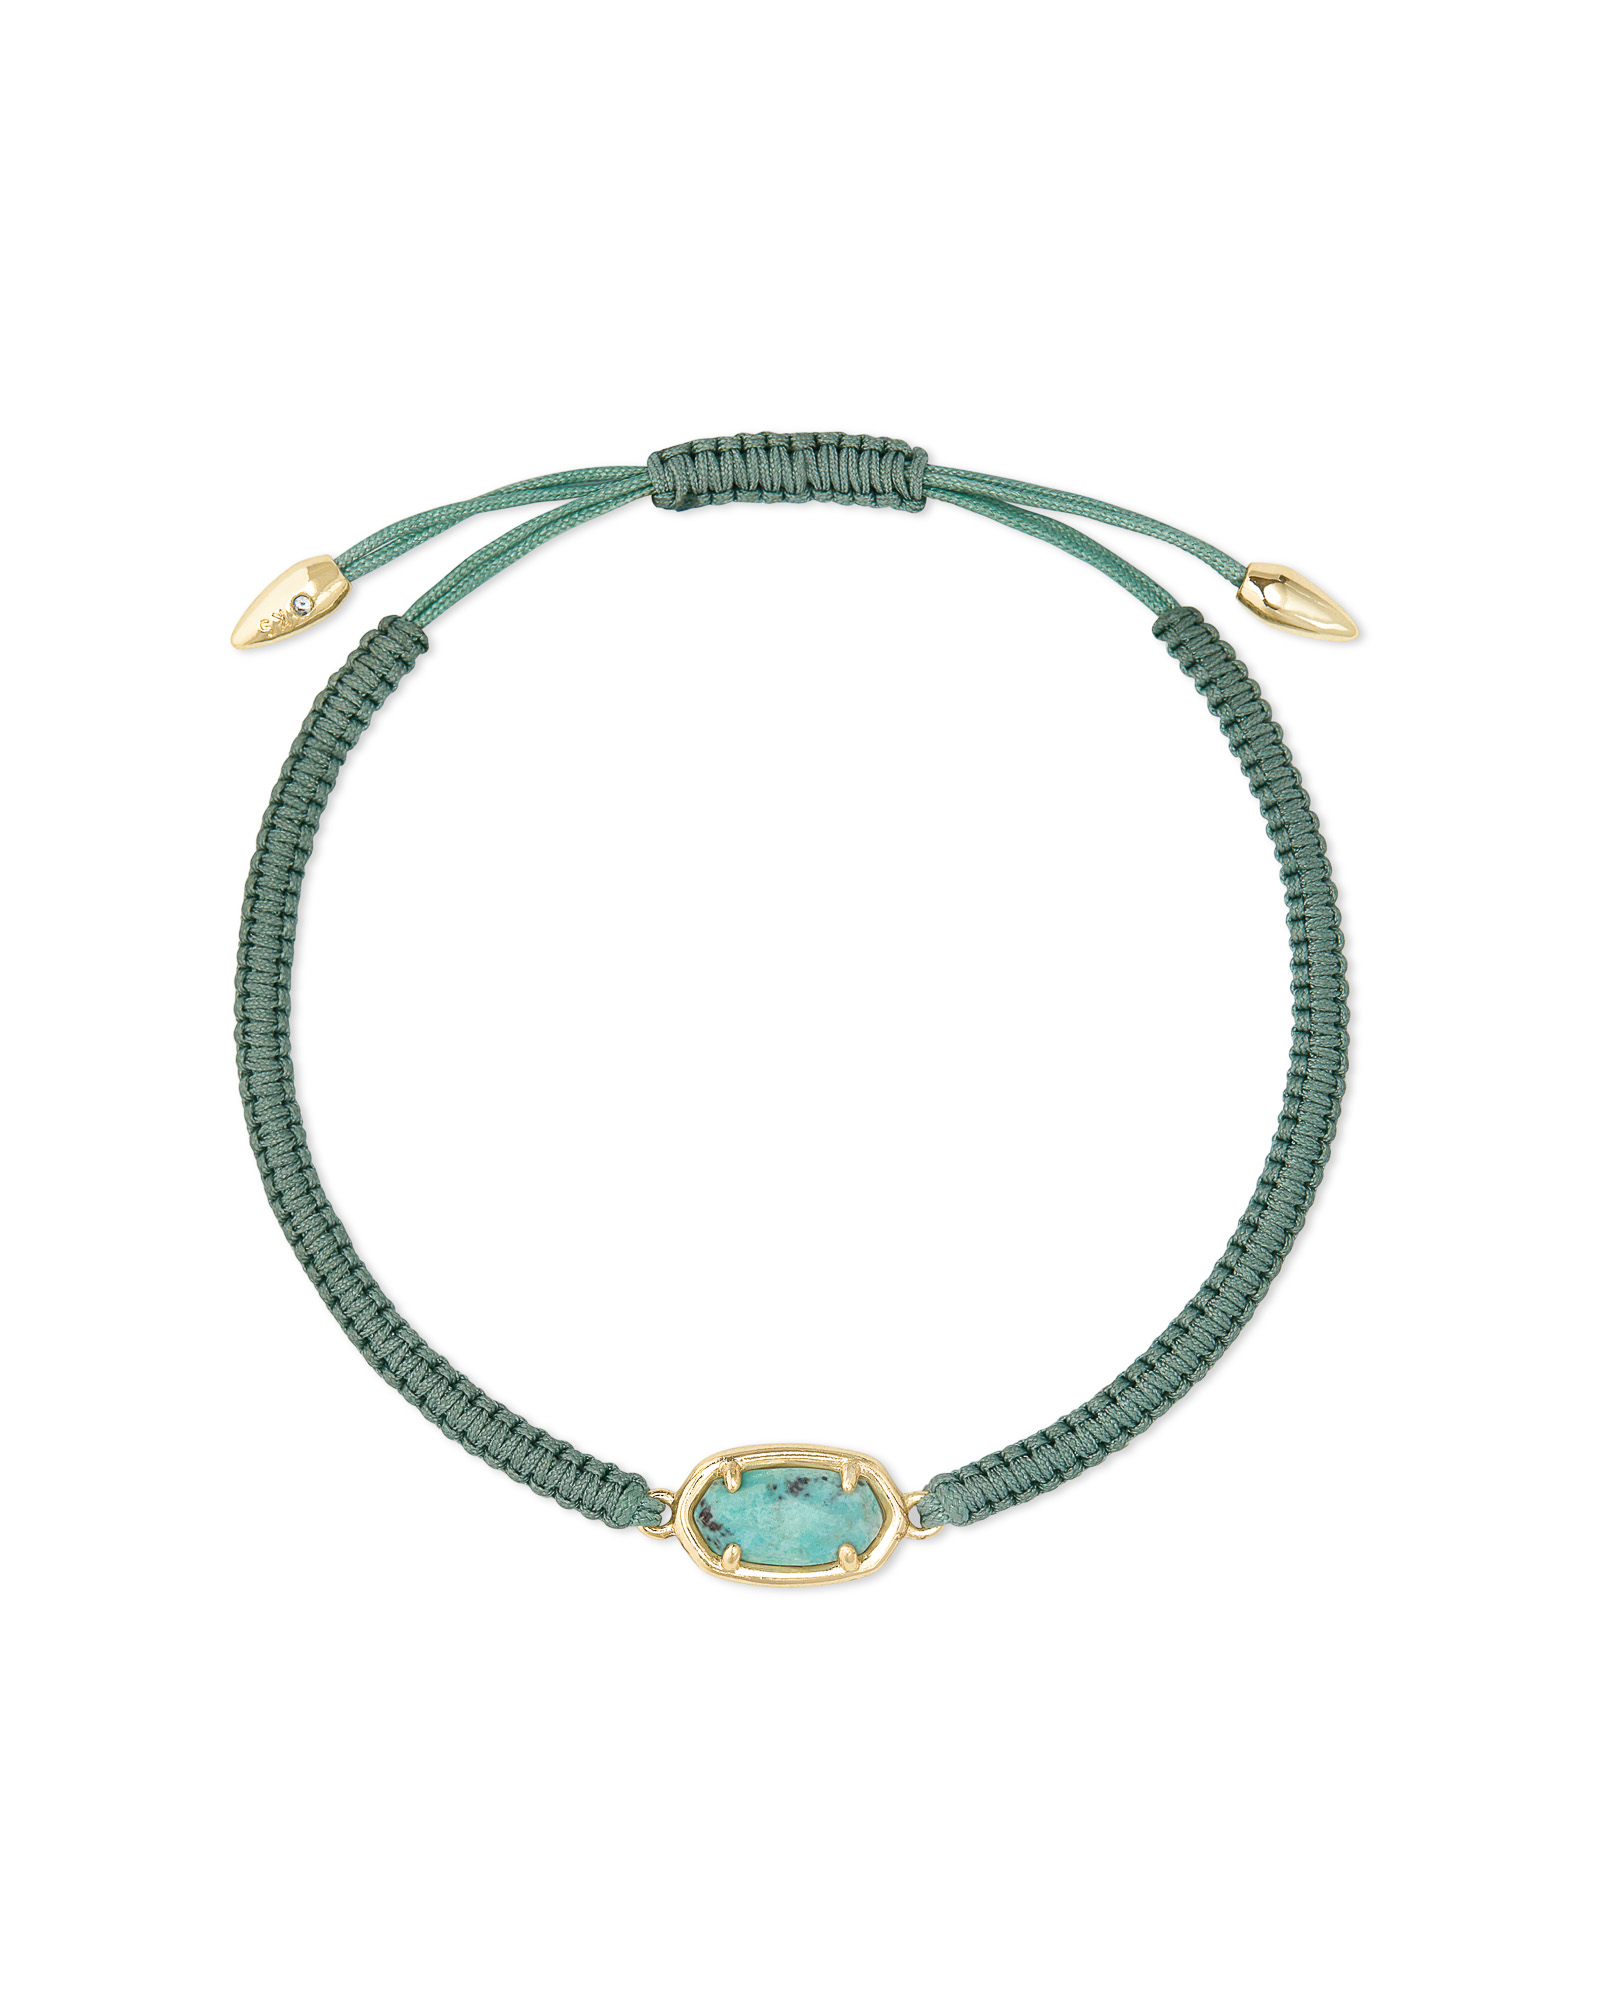 Grayson Sea Green Cord Friendship Bracelet in Sea Green Chrysocolla